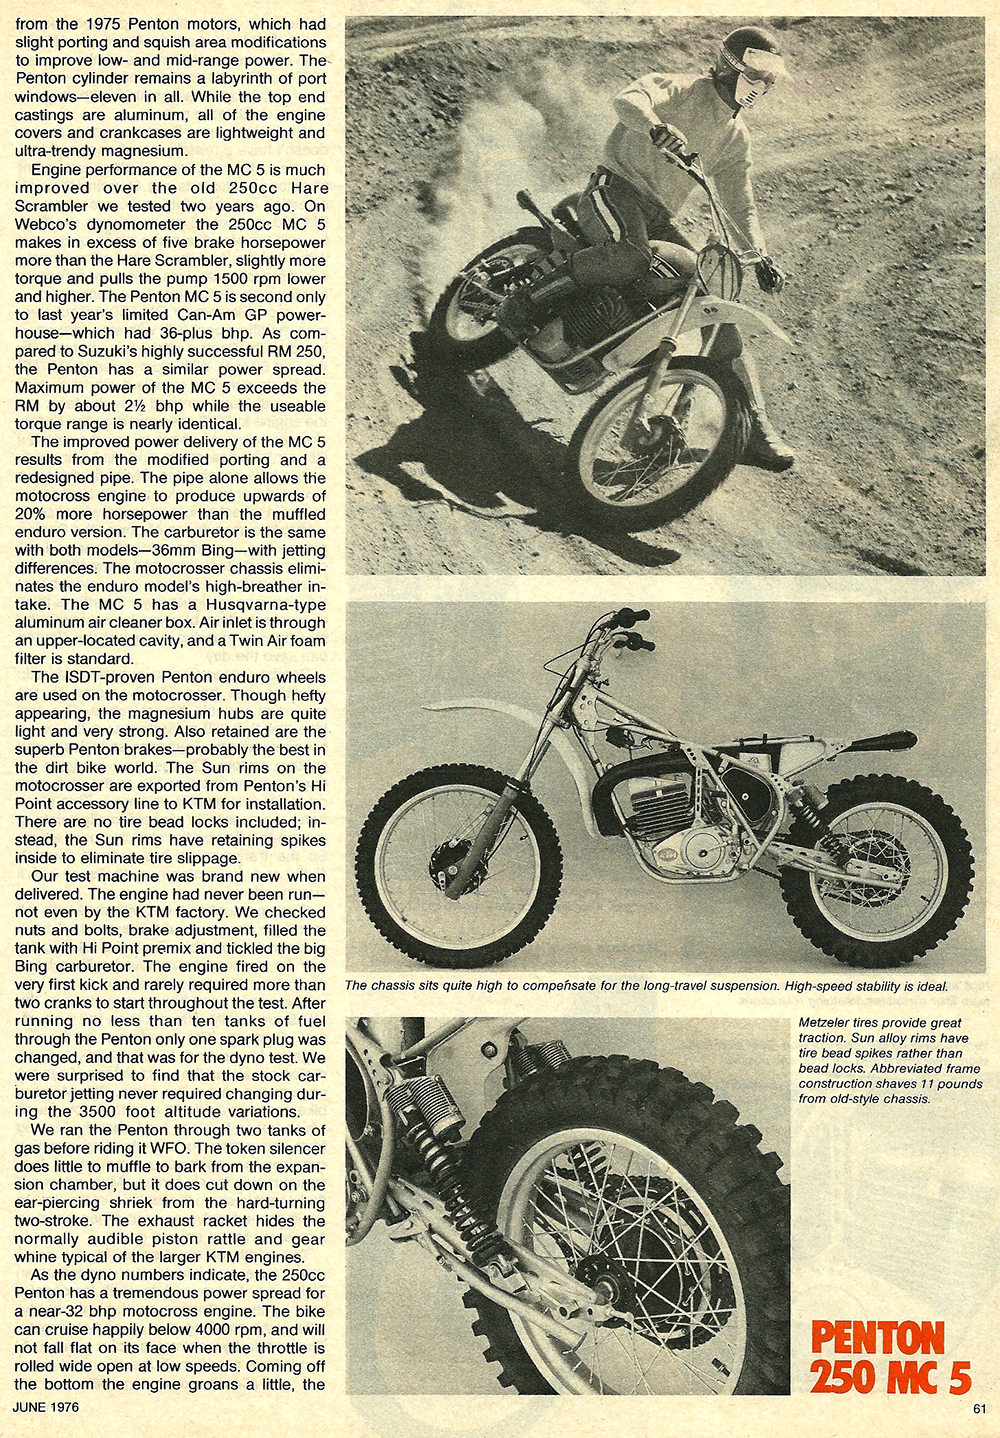 1976 Penton 250 MC 5 road test 4.jpg